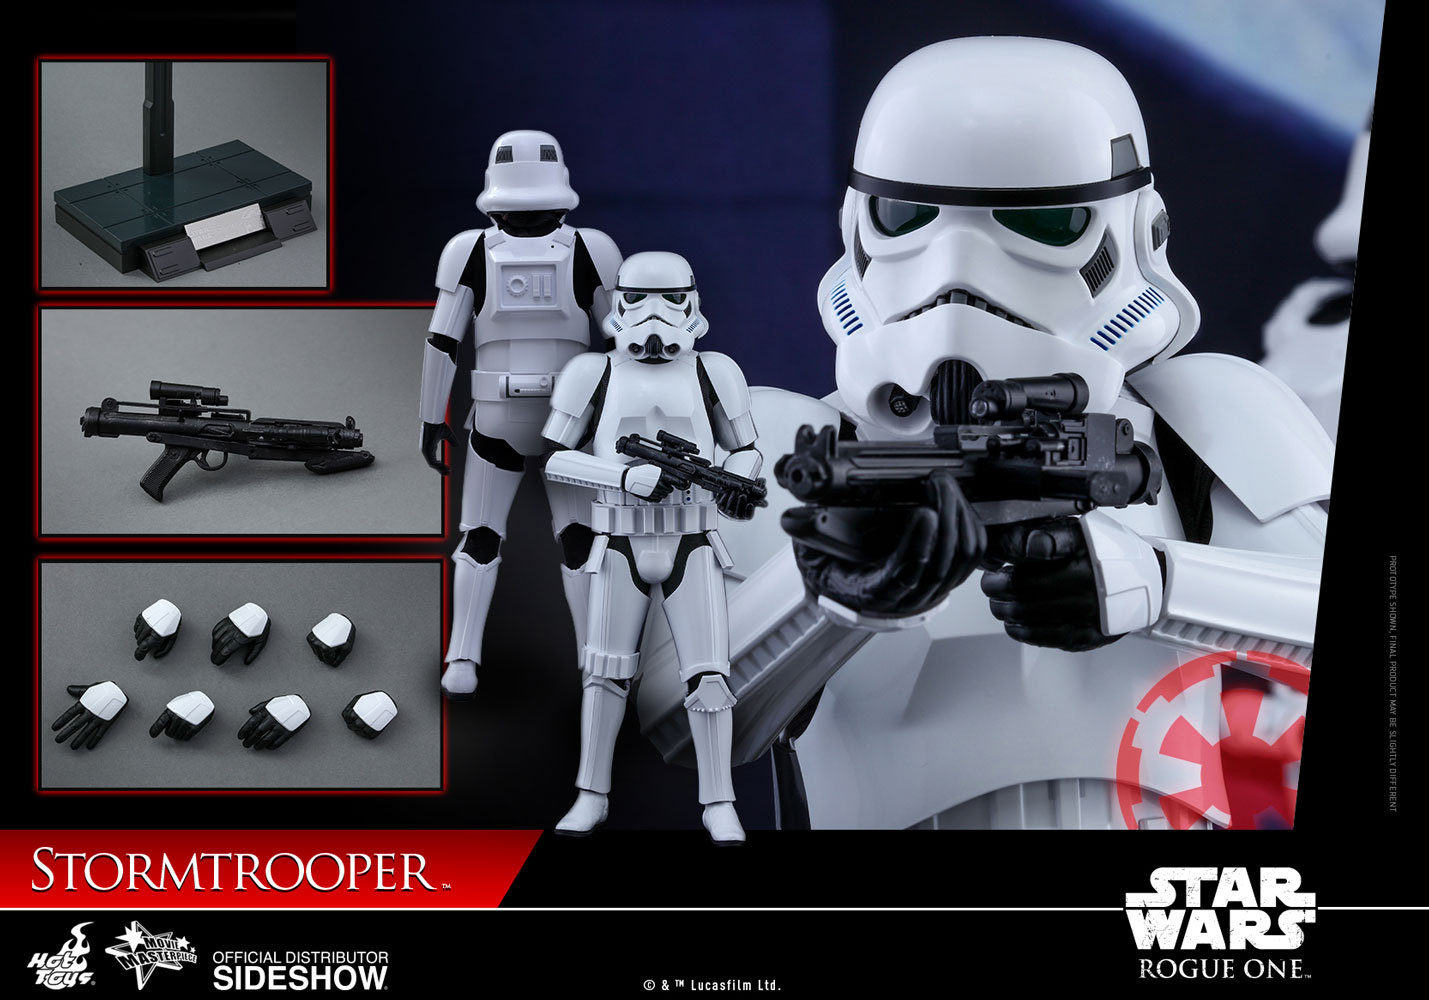 NEW IMPERIAL STROMTROOPER 1:6 SCALE SIDESHOW COLLECTIBLE MILITARIES OF STAR WARS